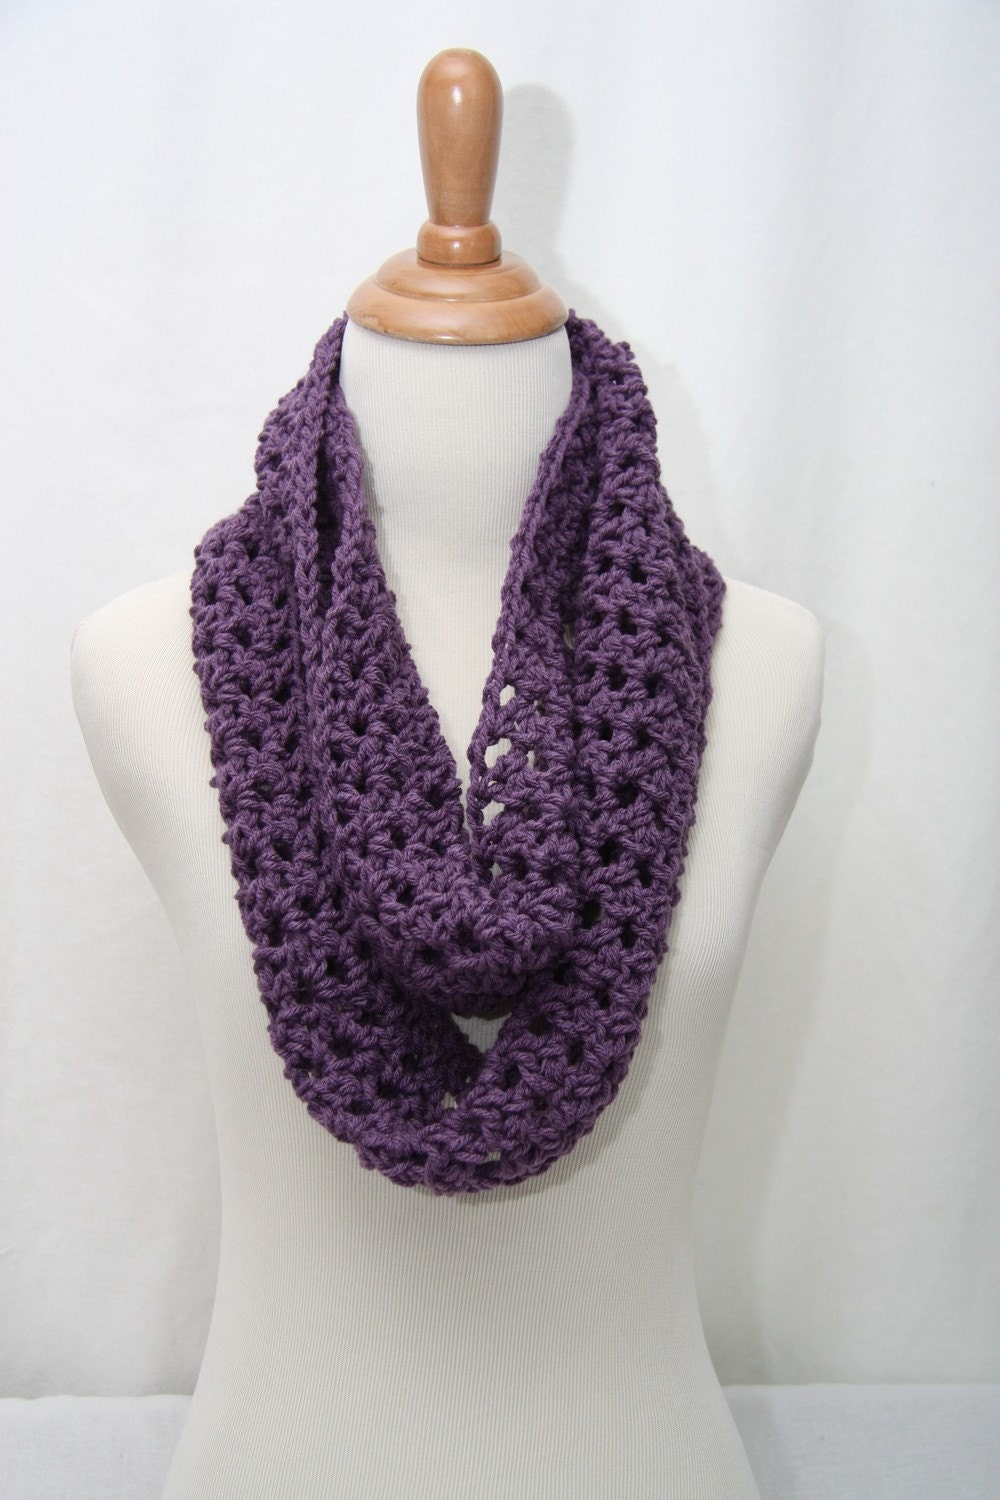 Crochet Patterns Neck Scarves : Infinity Cowl Neck Scarf by HandmadeByLarrie Cowl Neck Scarves Crochet